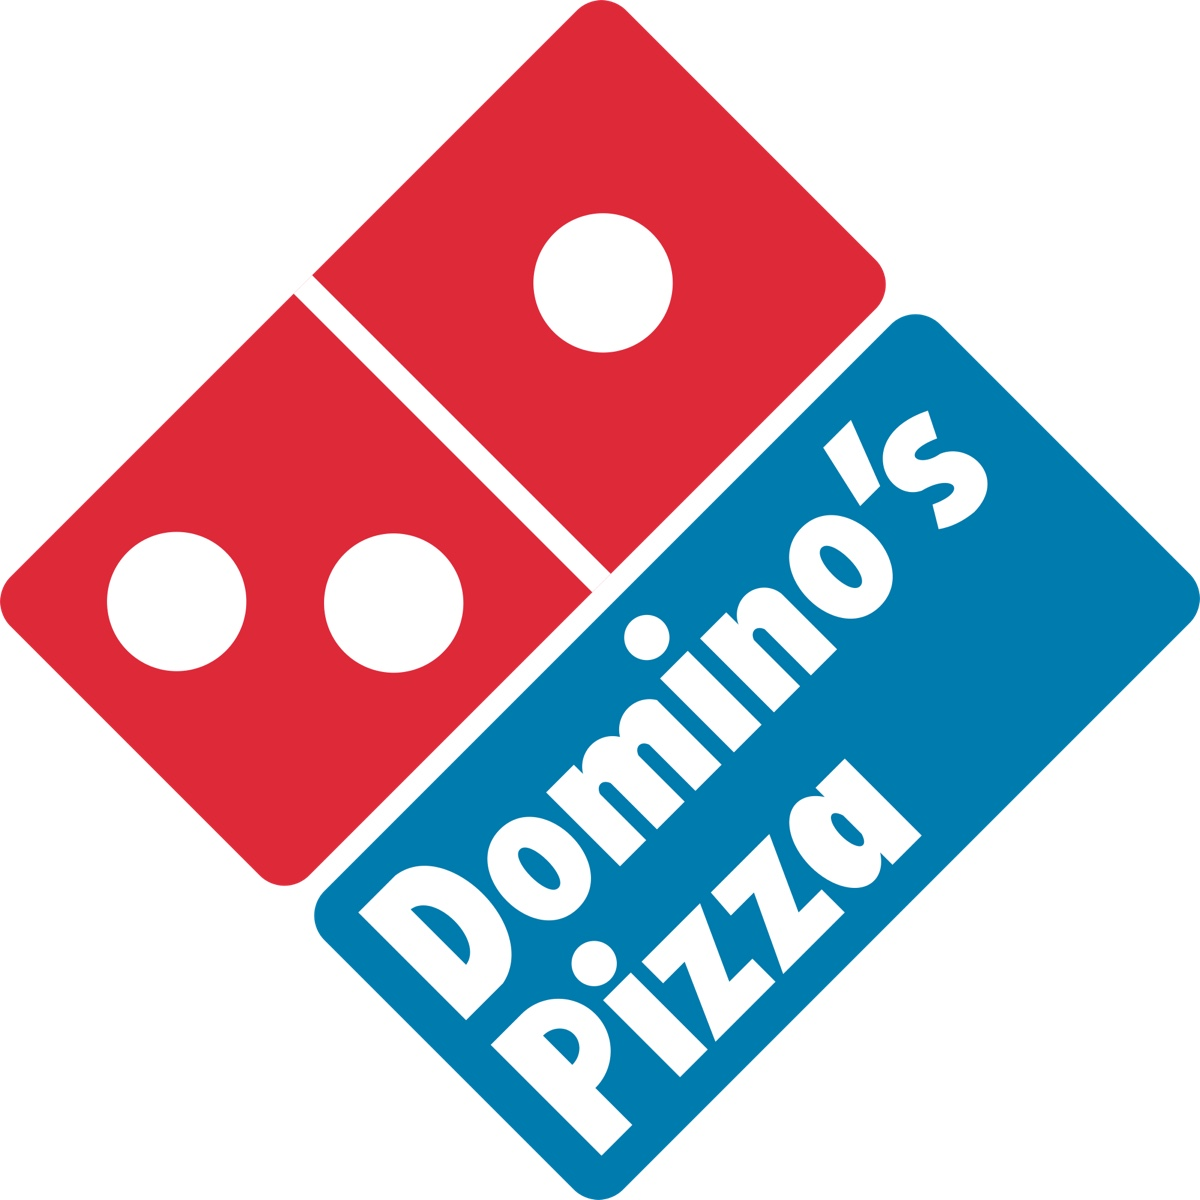 Dominos pizza logo 1200